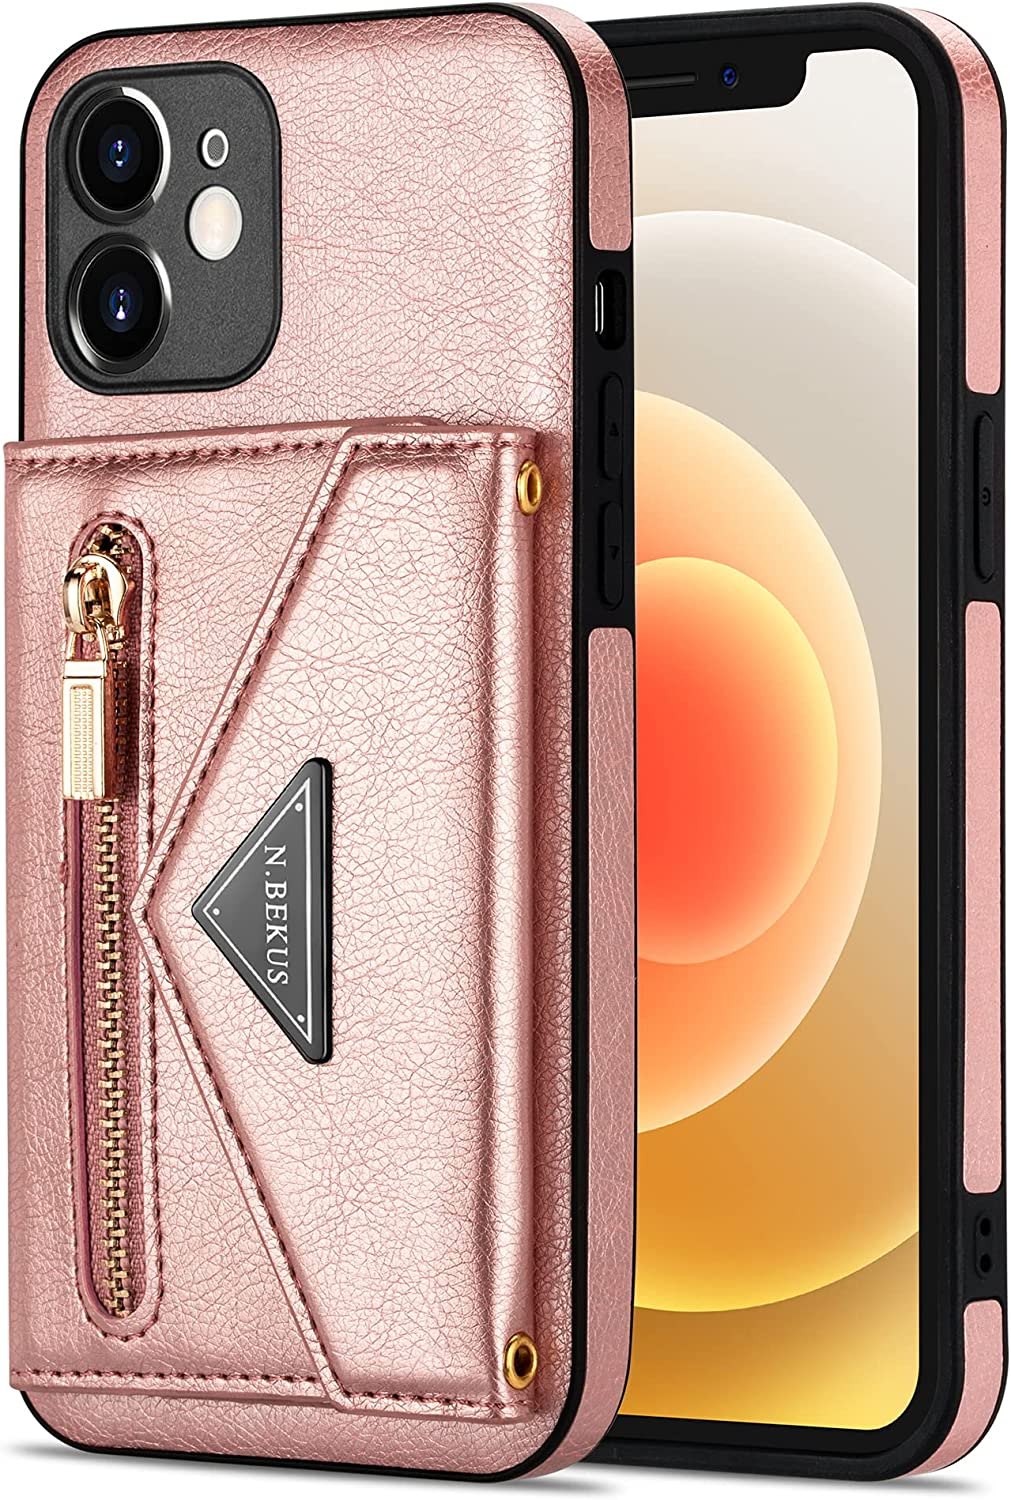 Crossbody Wallet Case for iPhone 12 with Card Holder, Zipper Back Flip Card Slot Protector Shockproof Purse PU Leather Cover with Removable Cross Body Strap (Rose Gold)